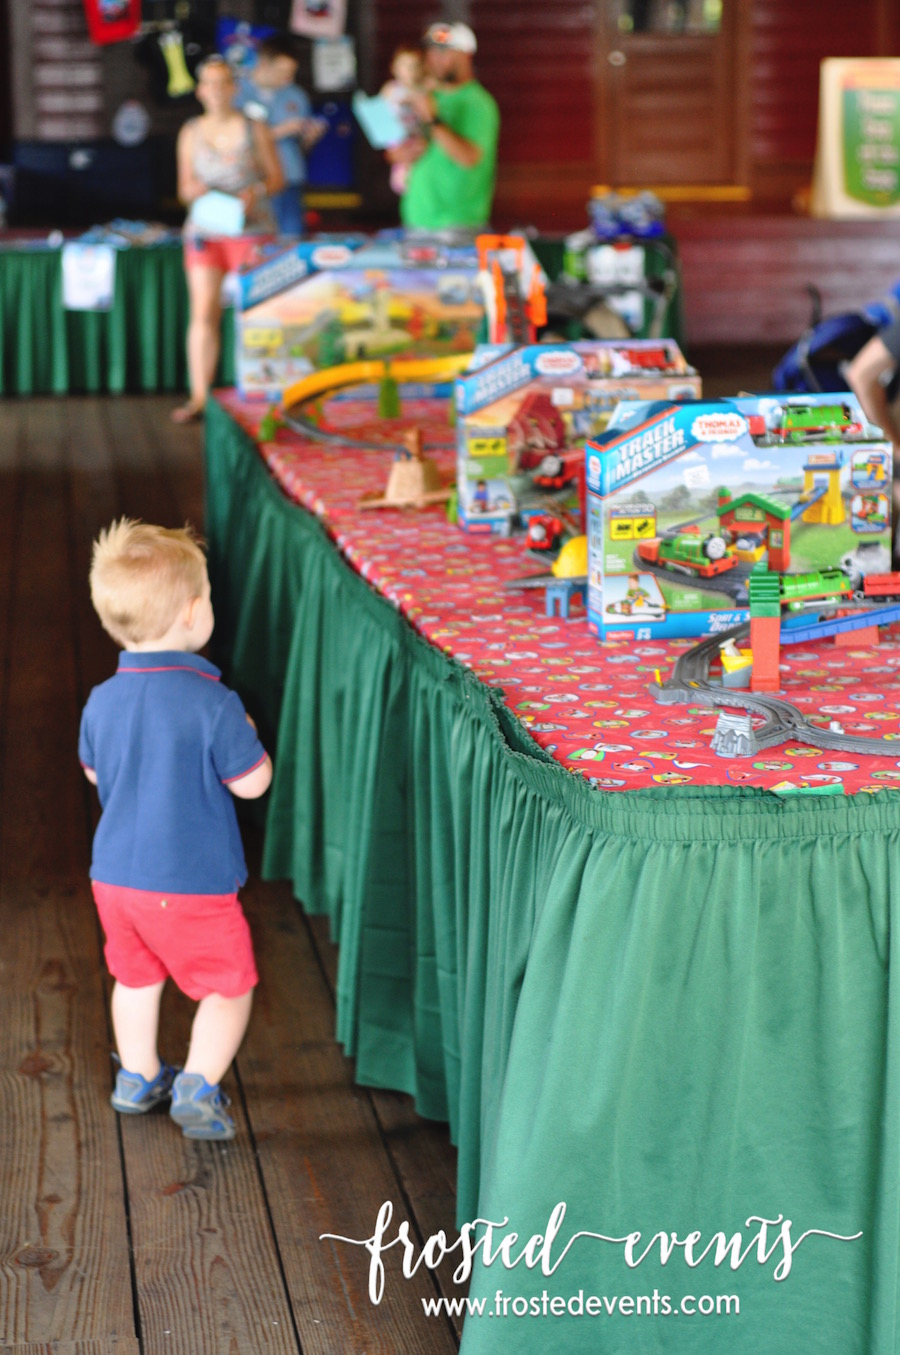 day-out-with-thomas-the-train-review-photos-frostedeventscom-mommy-blogger-pics-28